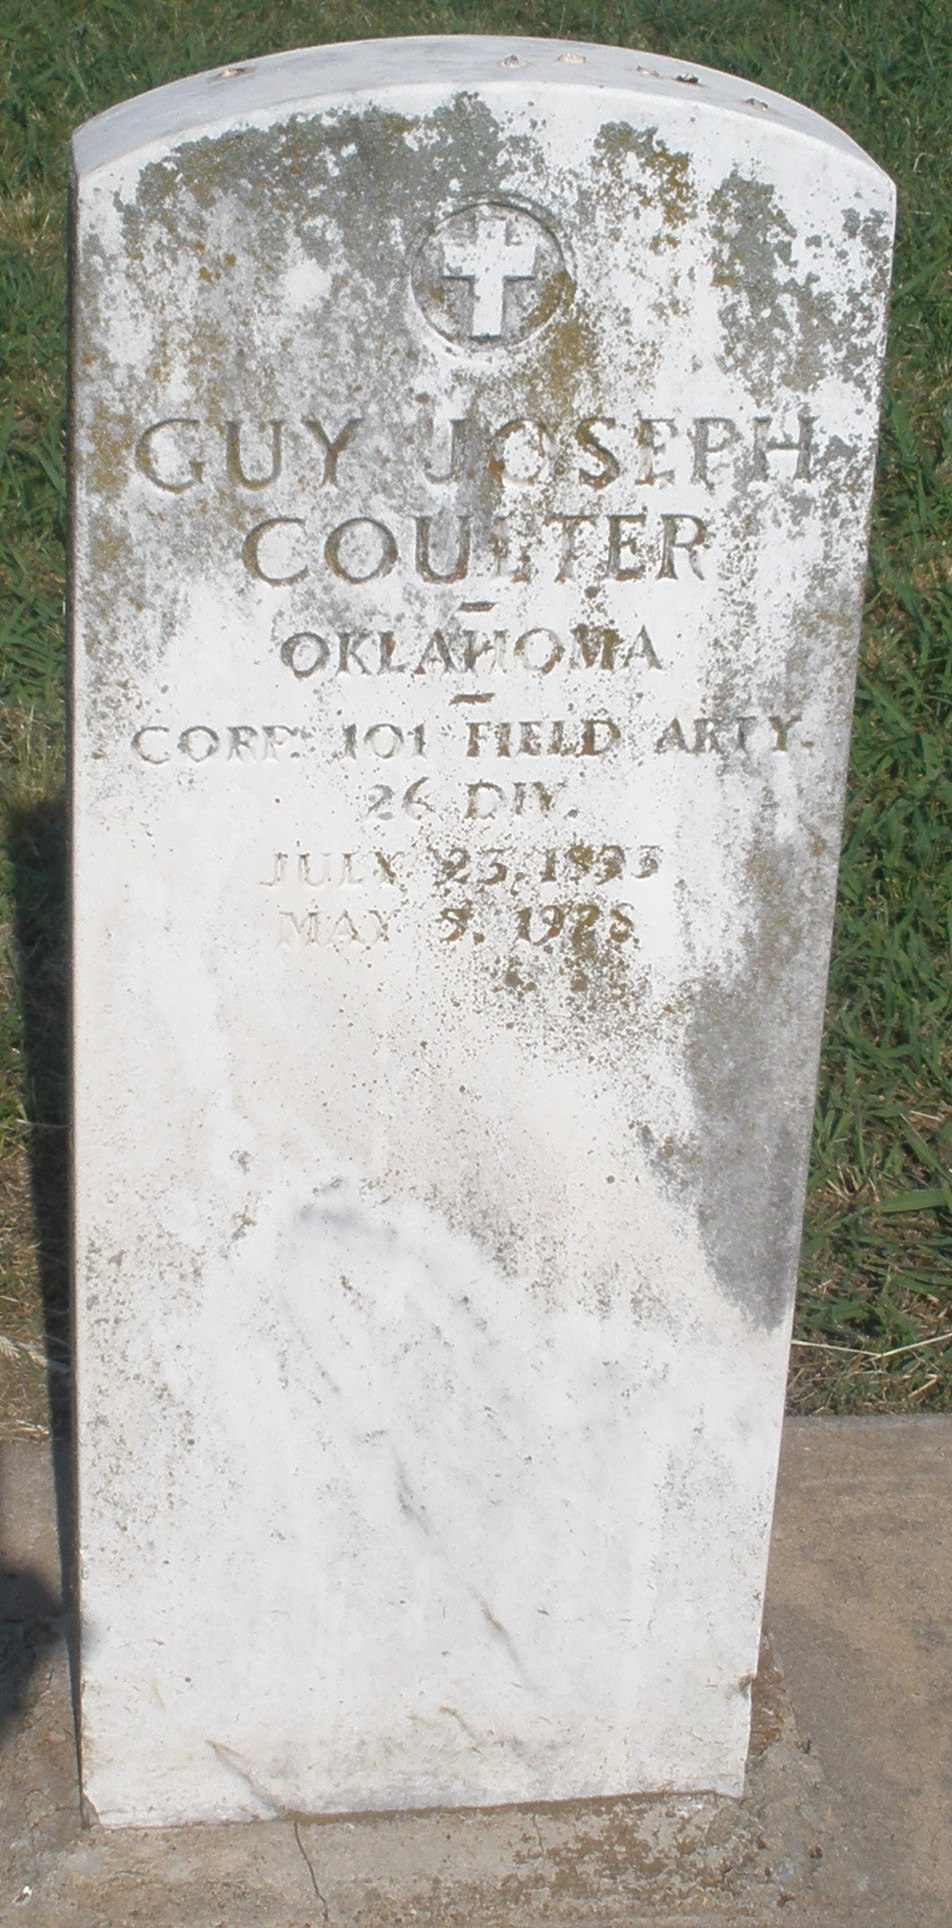 Guy Newton Coulter